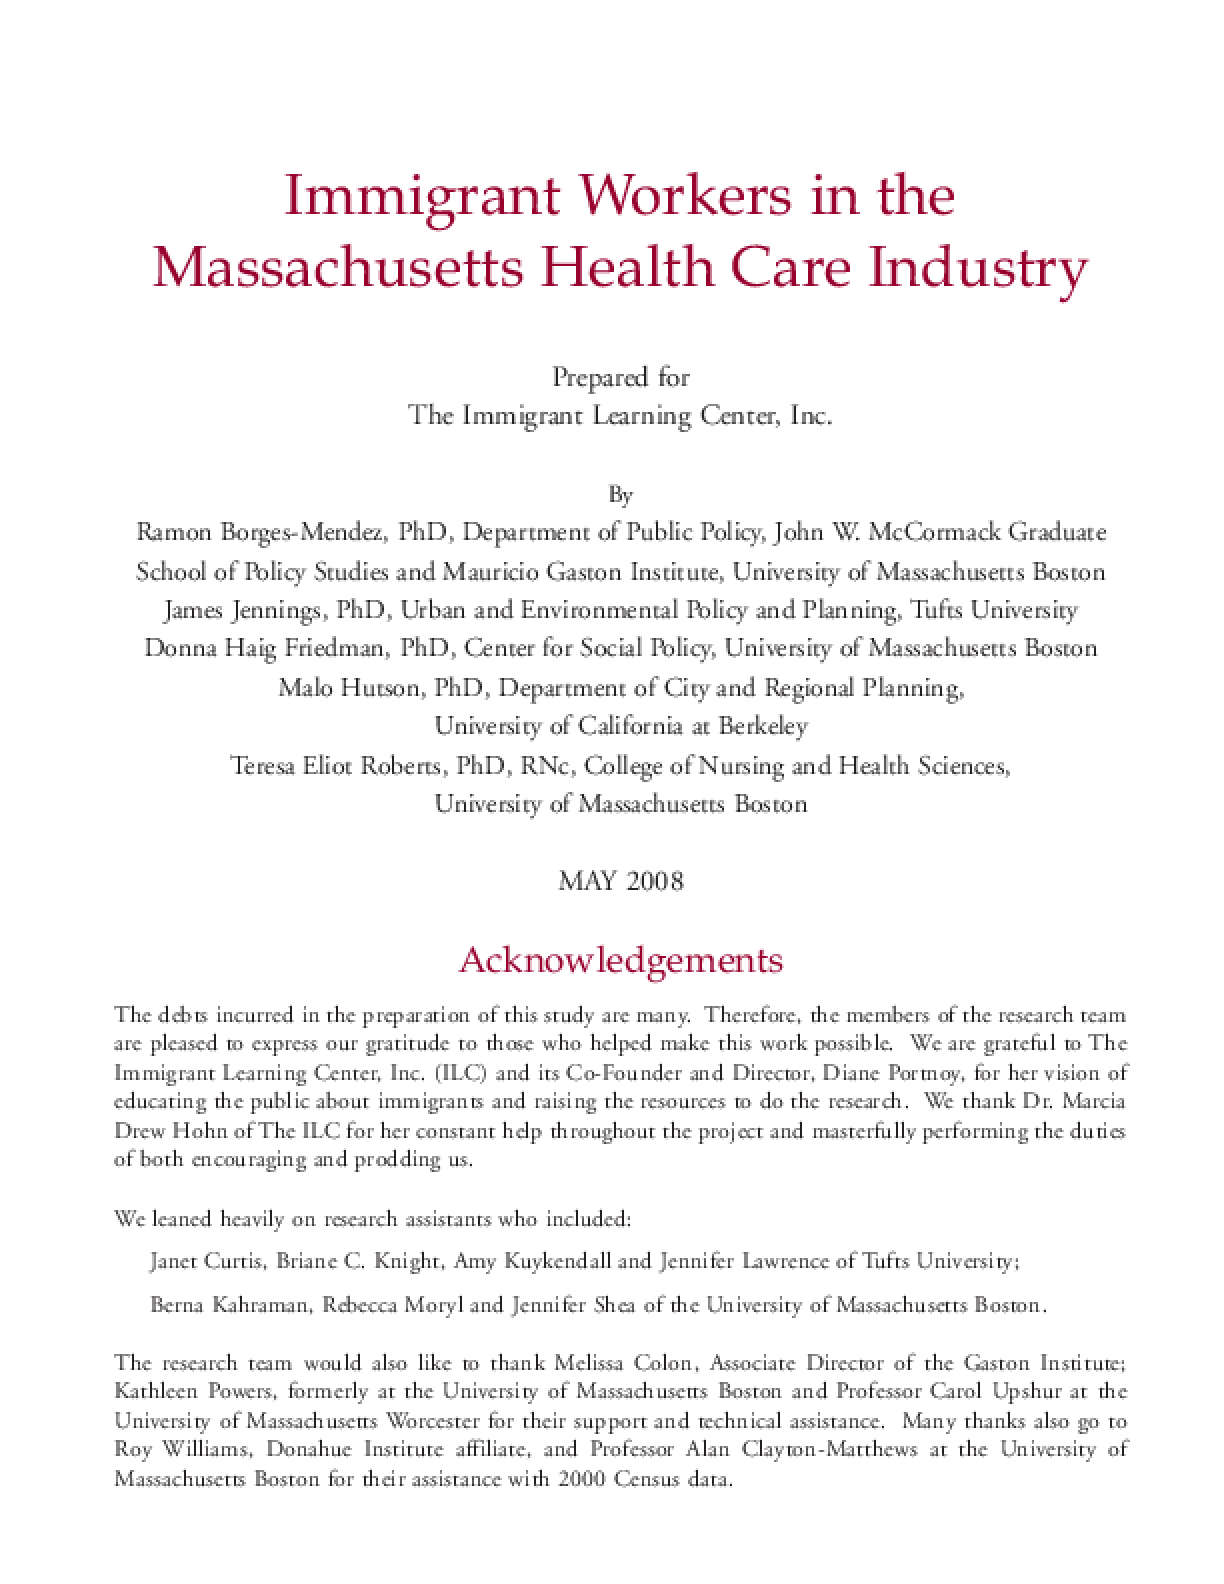 Immigrant Workers in the Massachusetts Health Care Industry Executive Summary